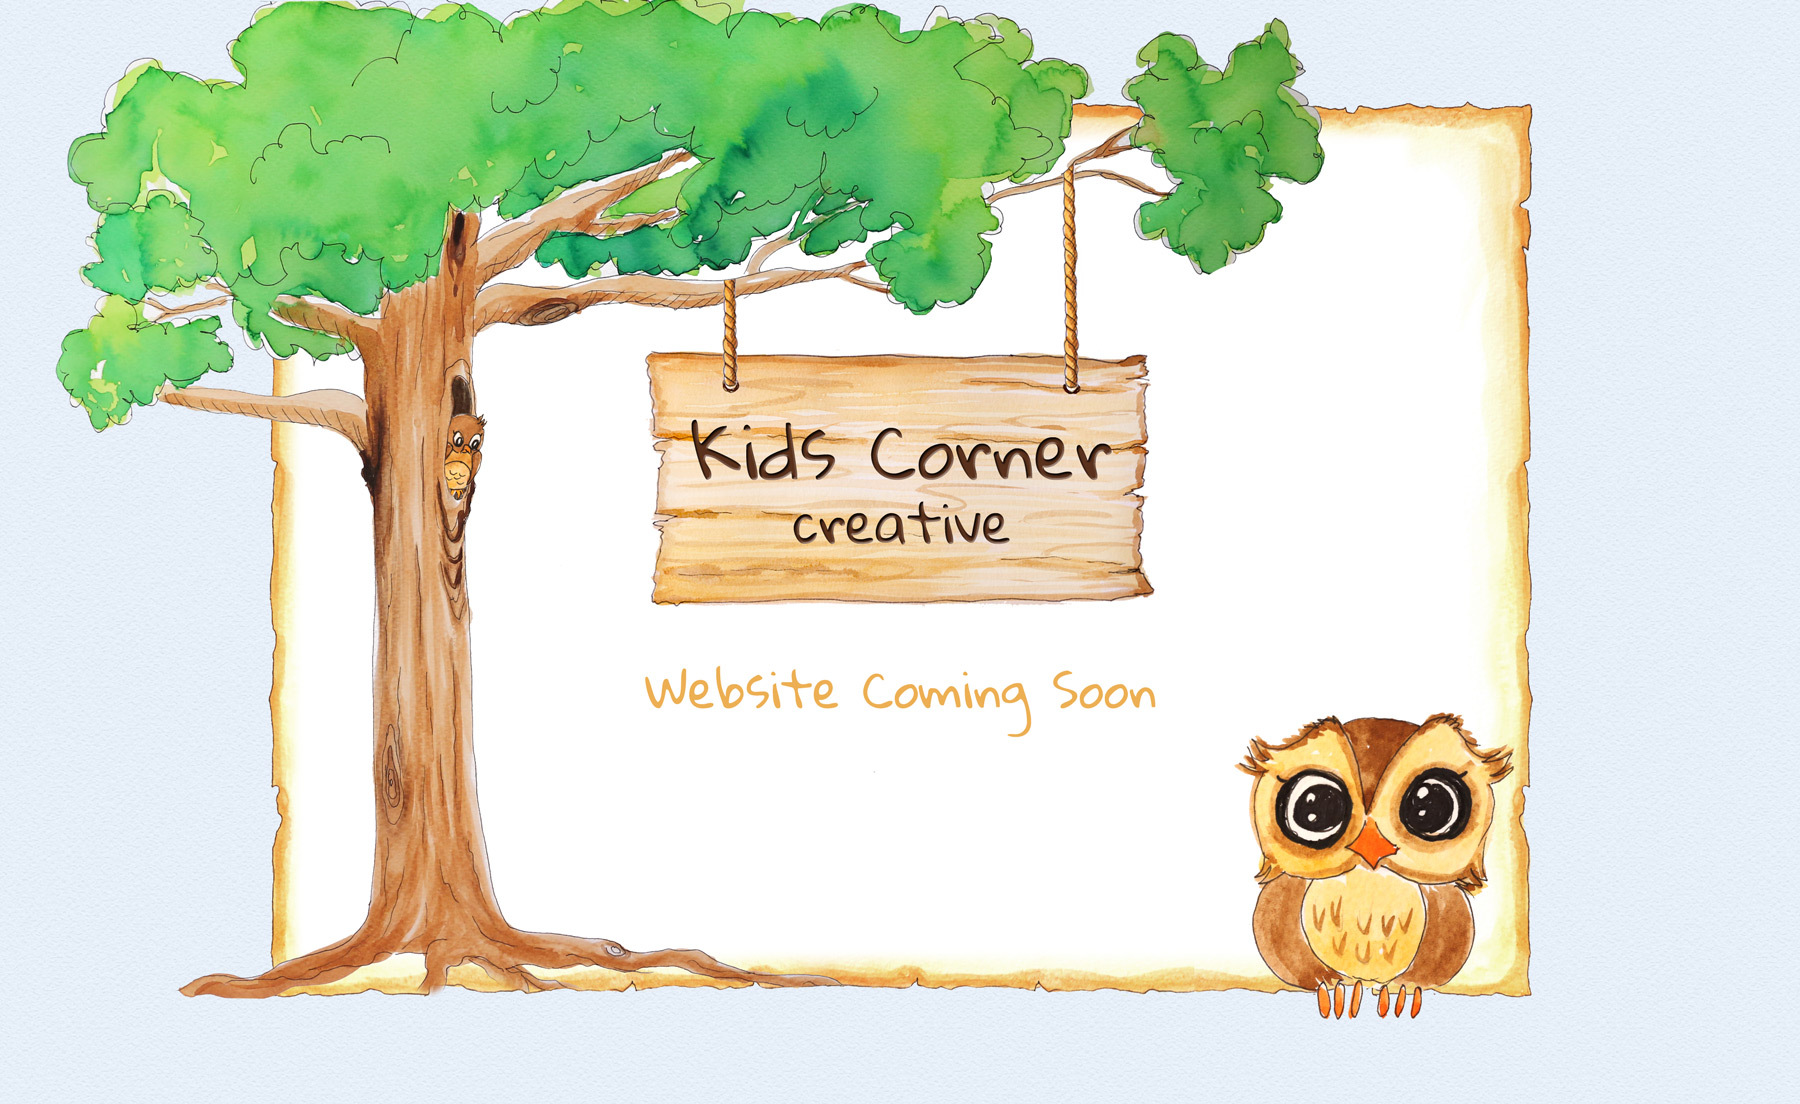 Kids Corner Creative - Hand painted PSD by dtbaker | ThemeForest